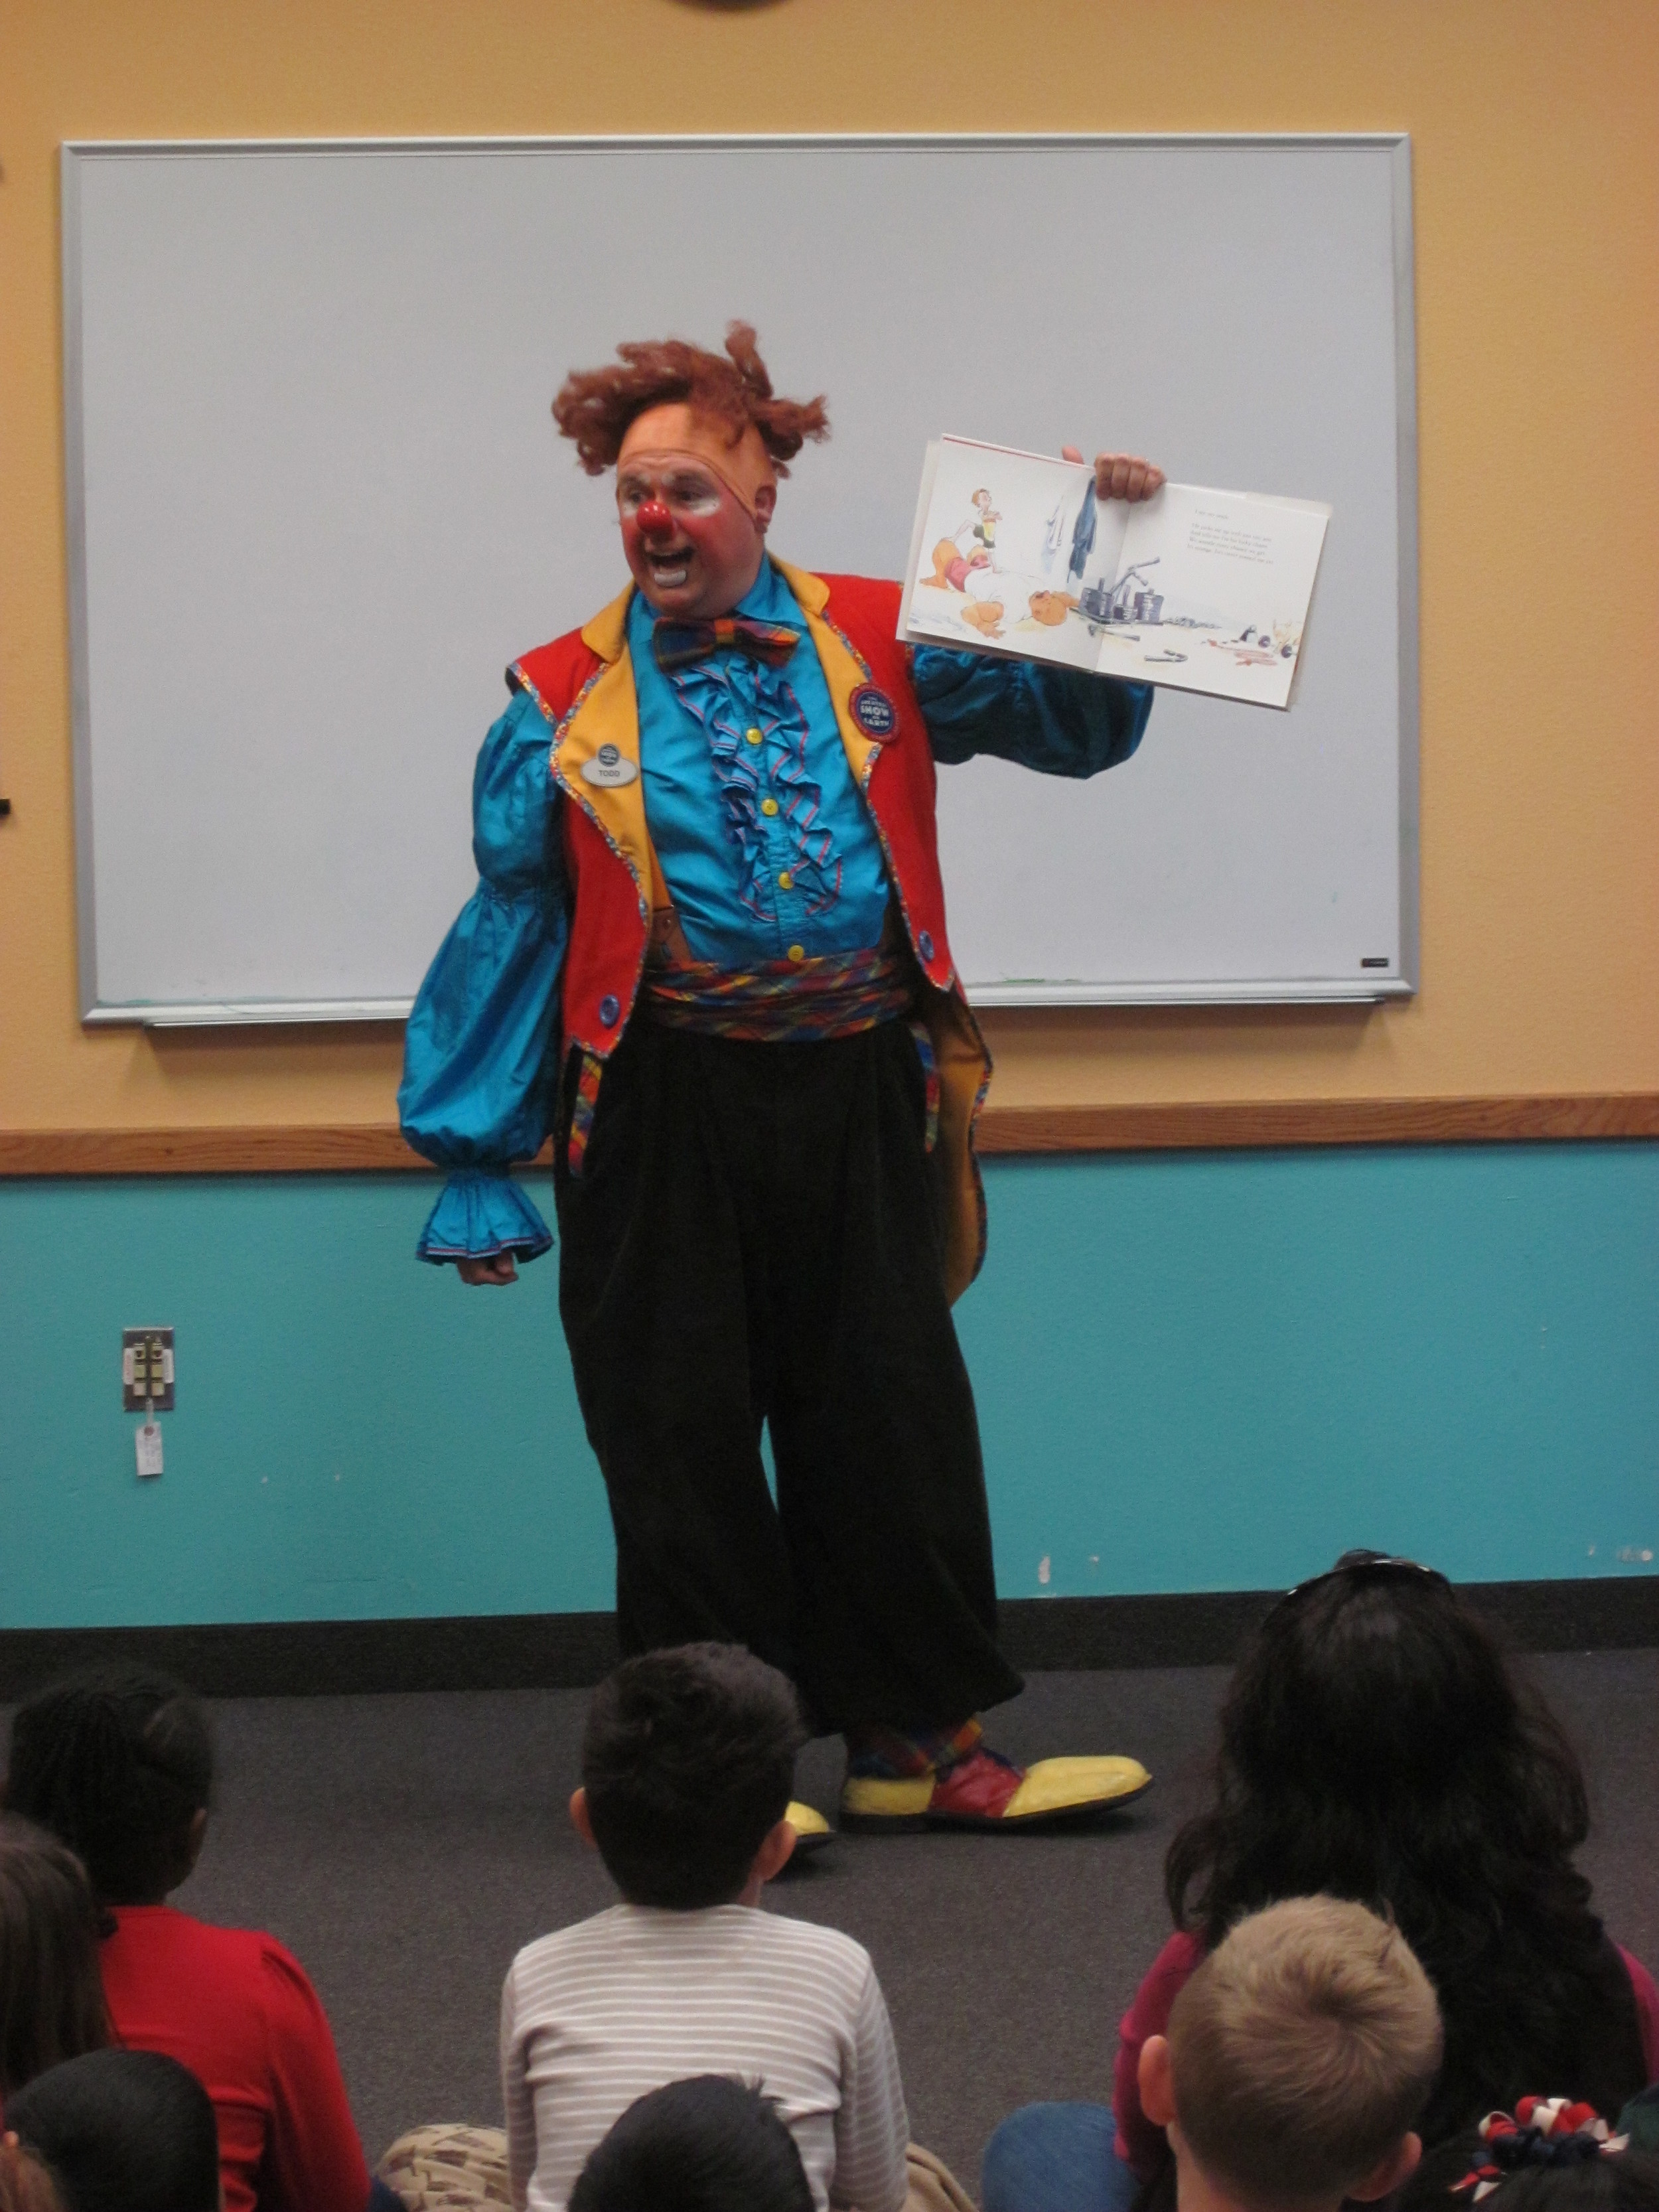 Reading-with-Ringling-Event-Crowd-1.jpg